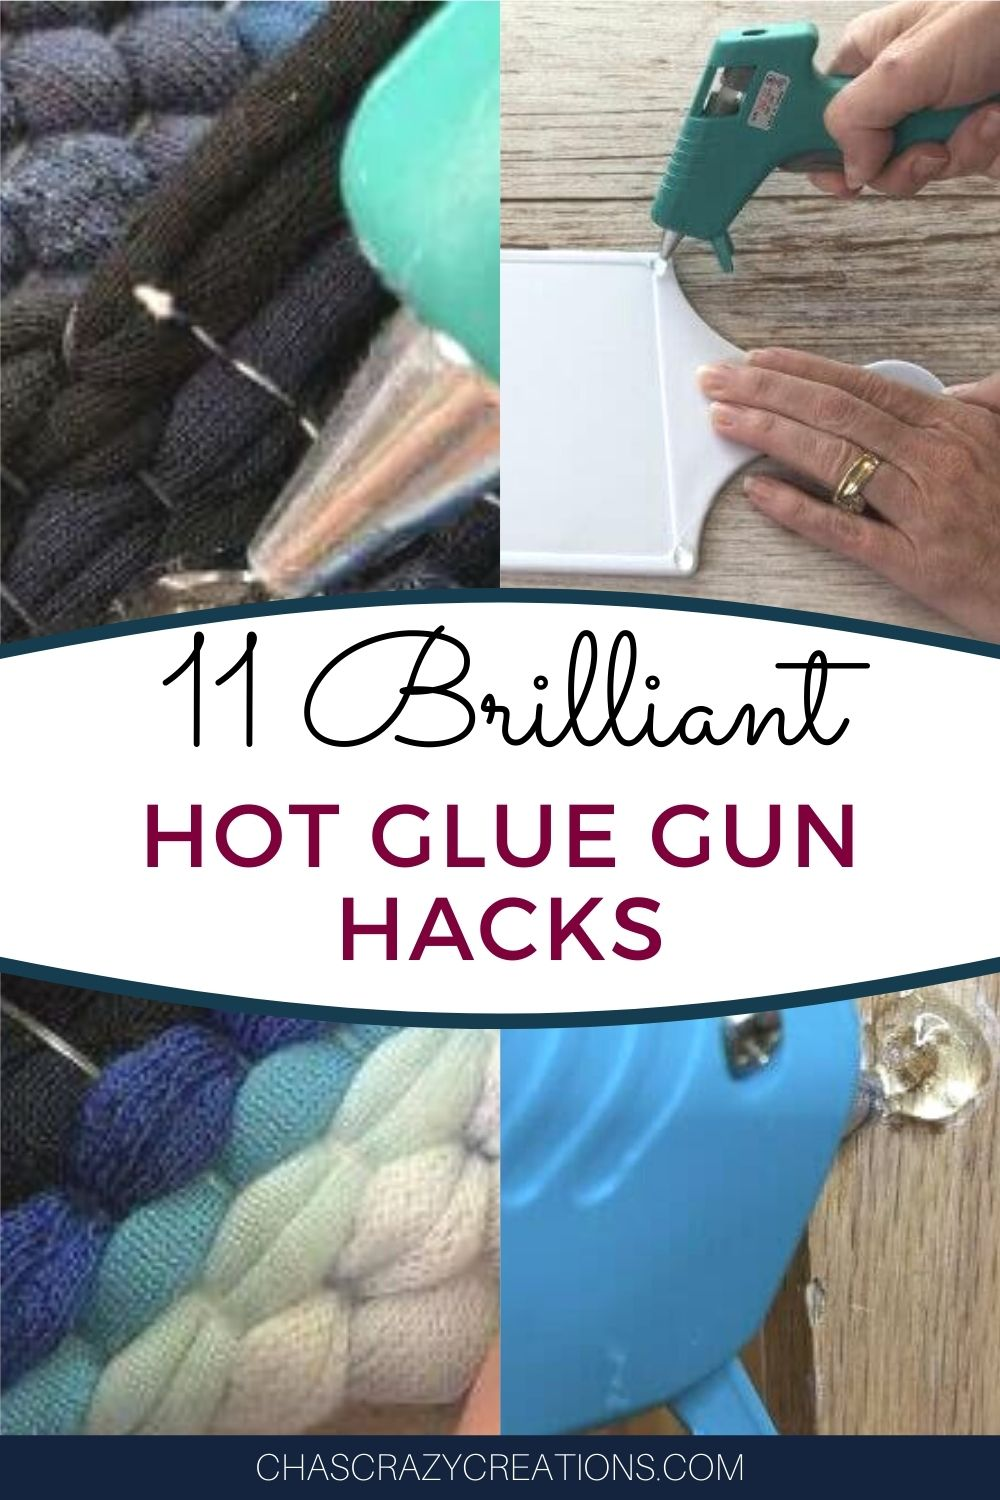 I love my hot glue gun and it's great for so much more than crafting. Here are a few ways I've use hot glue gun hacks to help in my home.